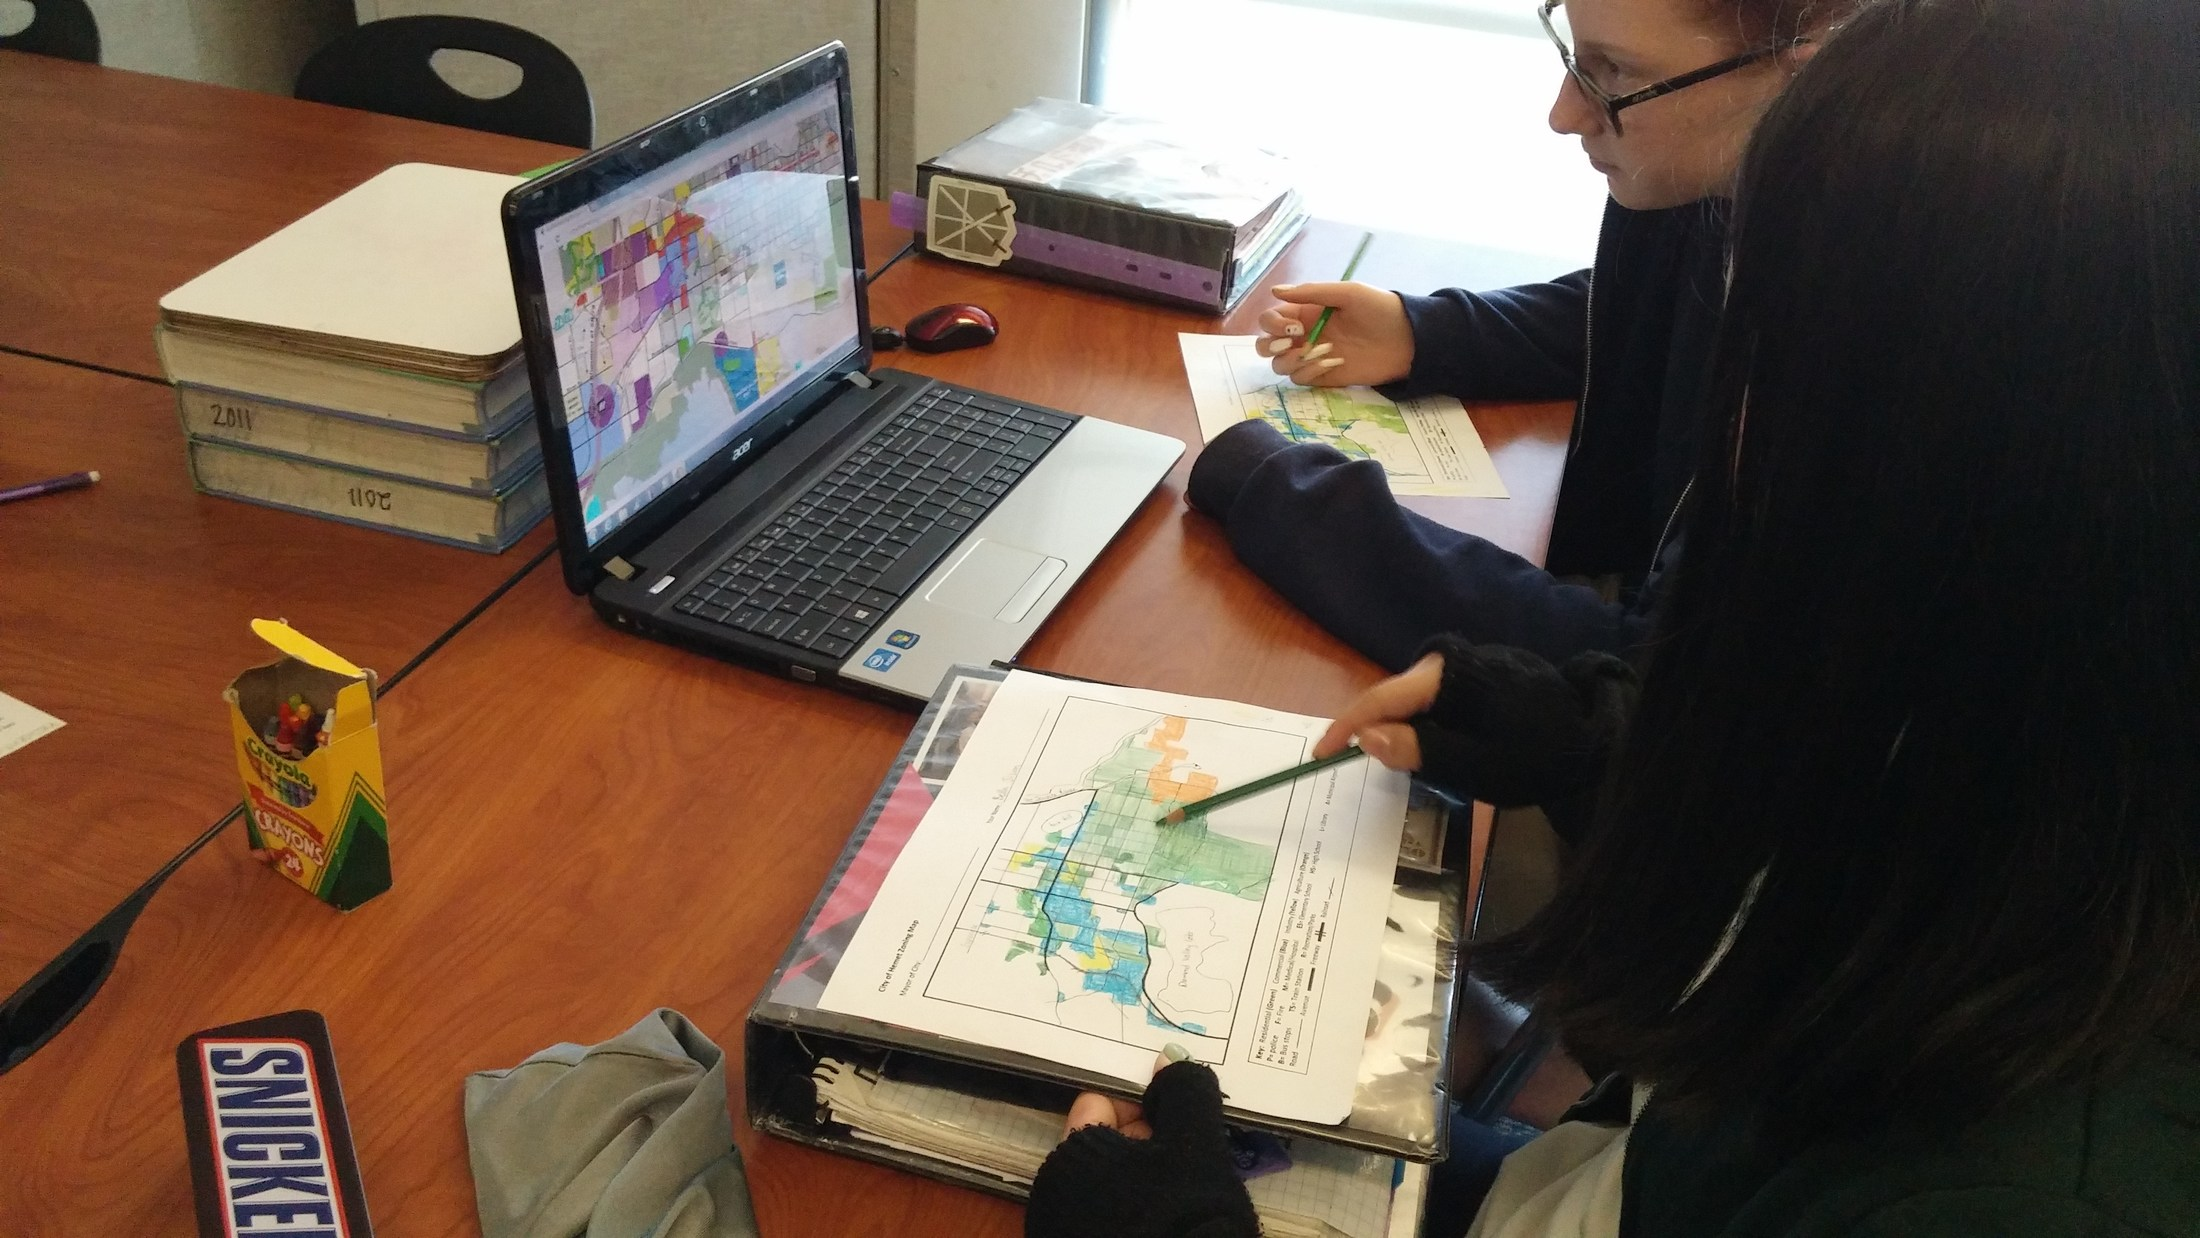 Civil engineering students looking at Hemet's General Land Use Map